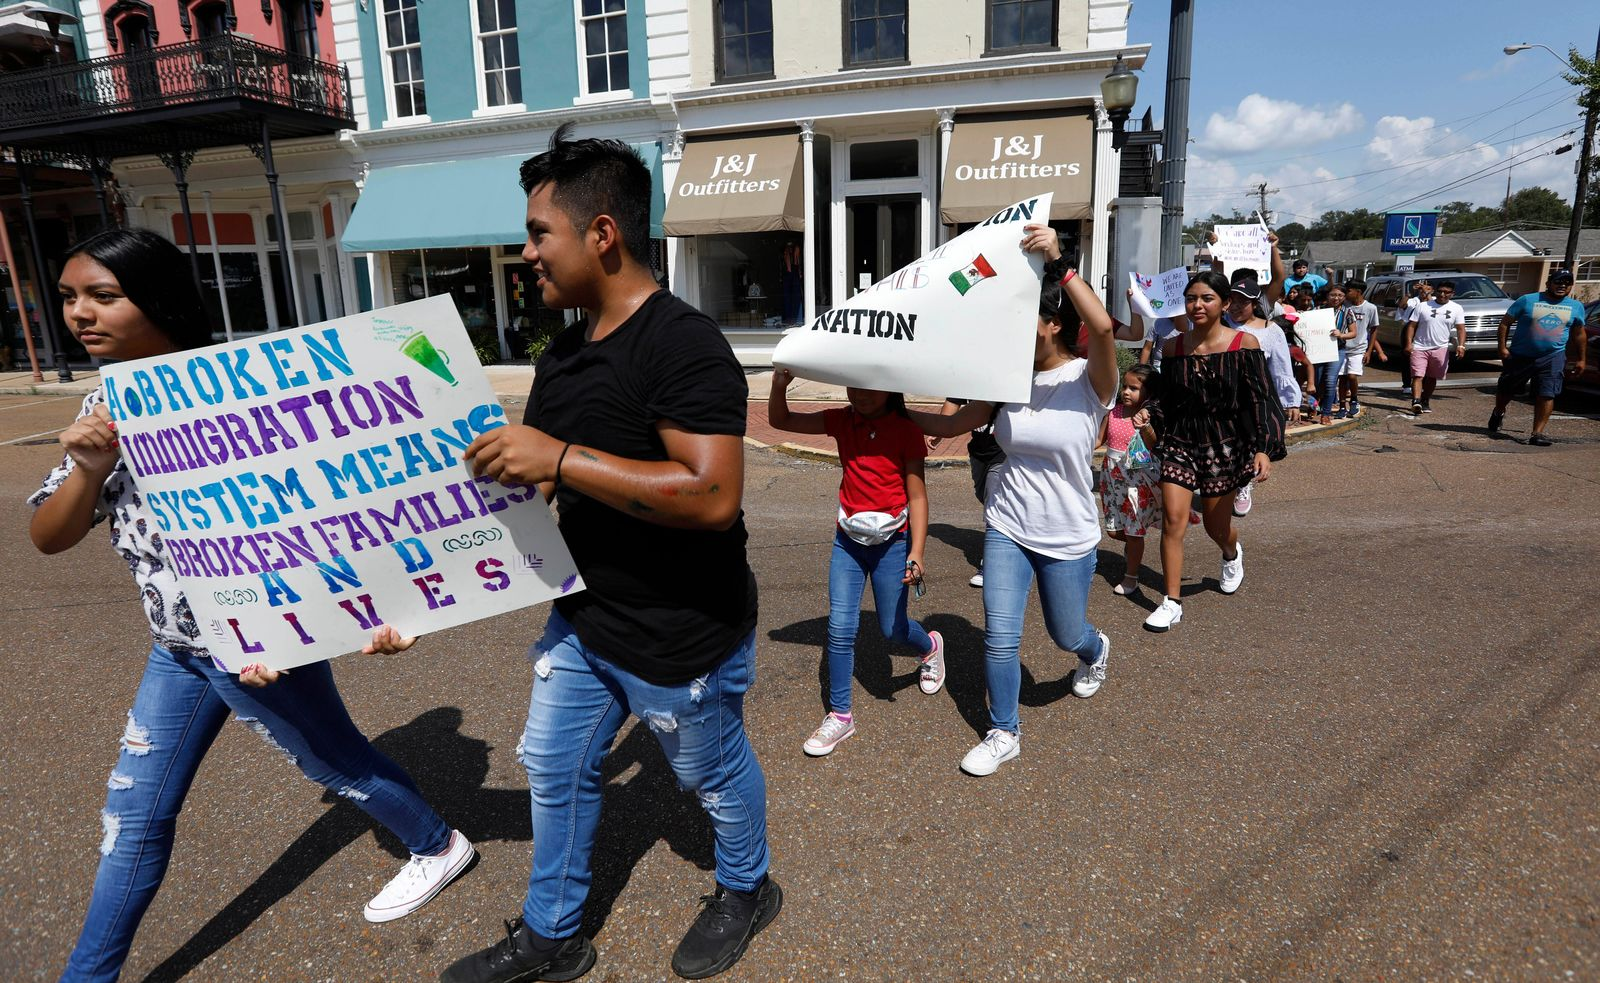 FILE - In this Aug. 11, 2019 photo, children of mainly Latino immigrant parents hold signs in support of them and those individuals picked up during an immigration raid at a food processing plant in Canton, Miss., following a Spanish Mass at Sacred Heart Catholic Church in Canton, Miss. Trump administration rules that could deny green cards to immigrants if they use Medicaid, food stamps, housing vouchers or other forms of public assistance are going into effect. (AP Photo/Rogelio V. Solis)